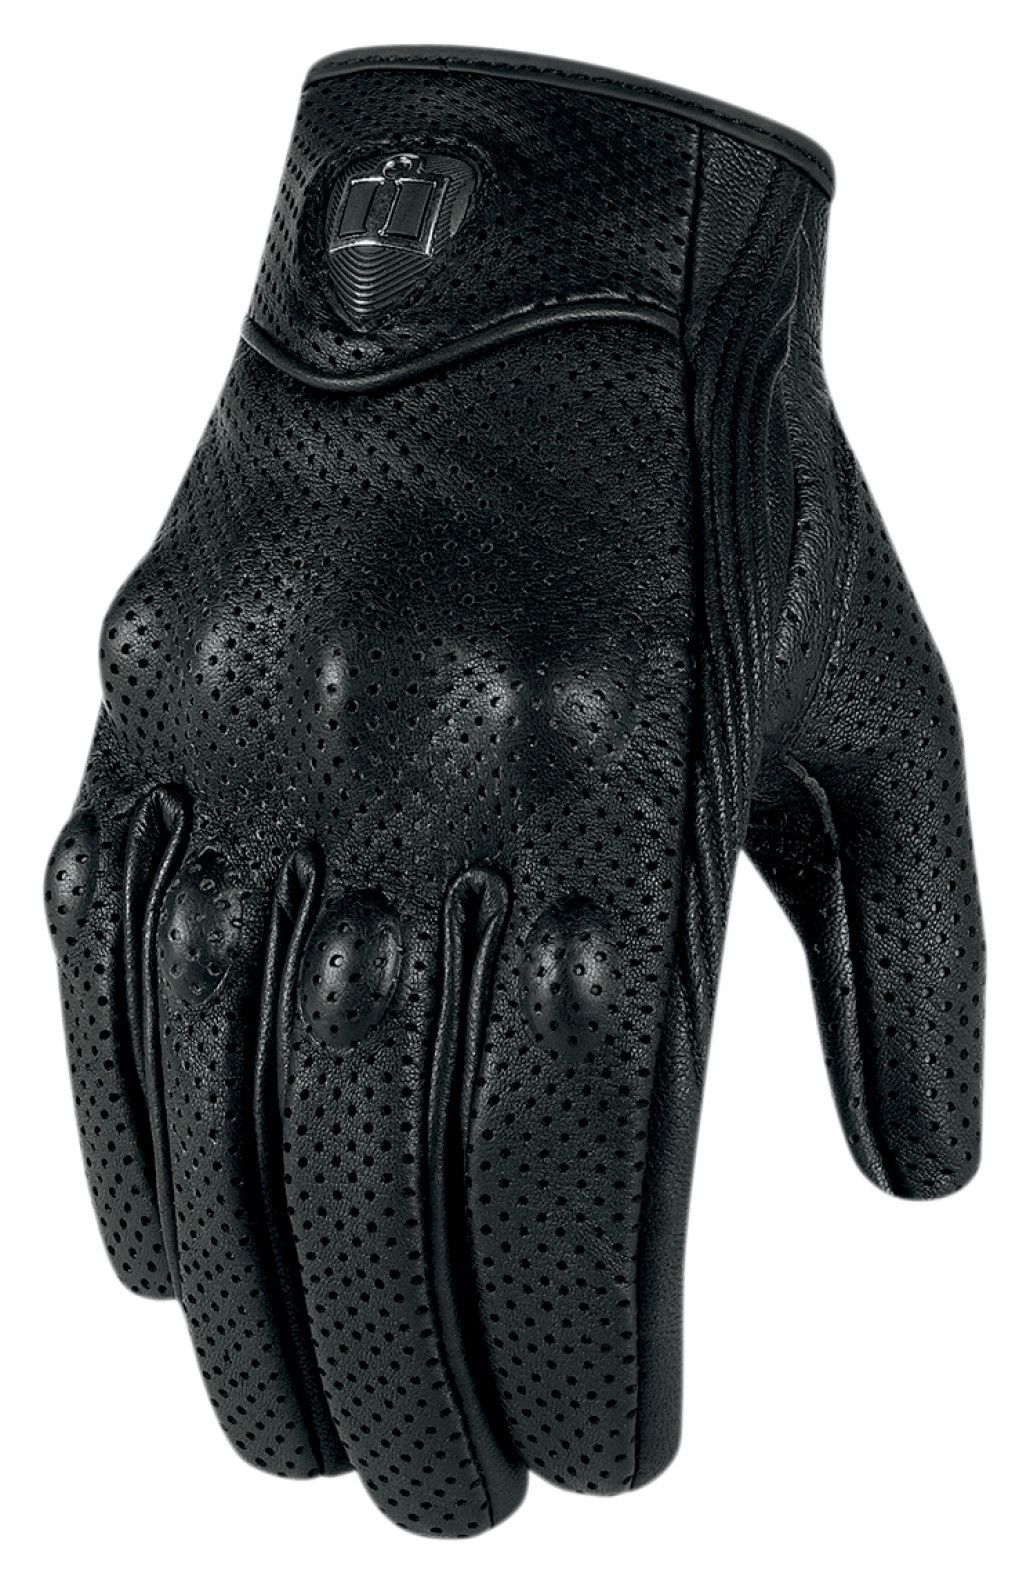 Womens leather gloves australia - Womens Leather Gloves Australia 56